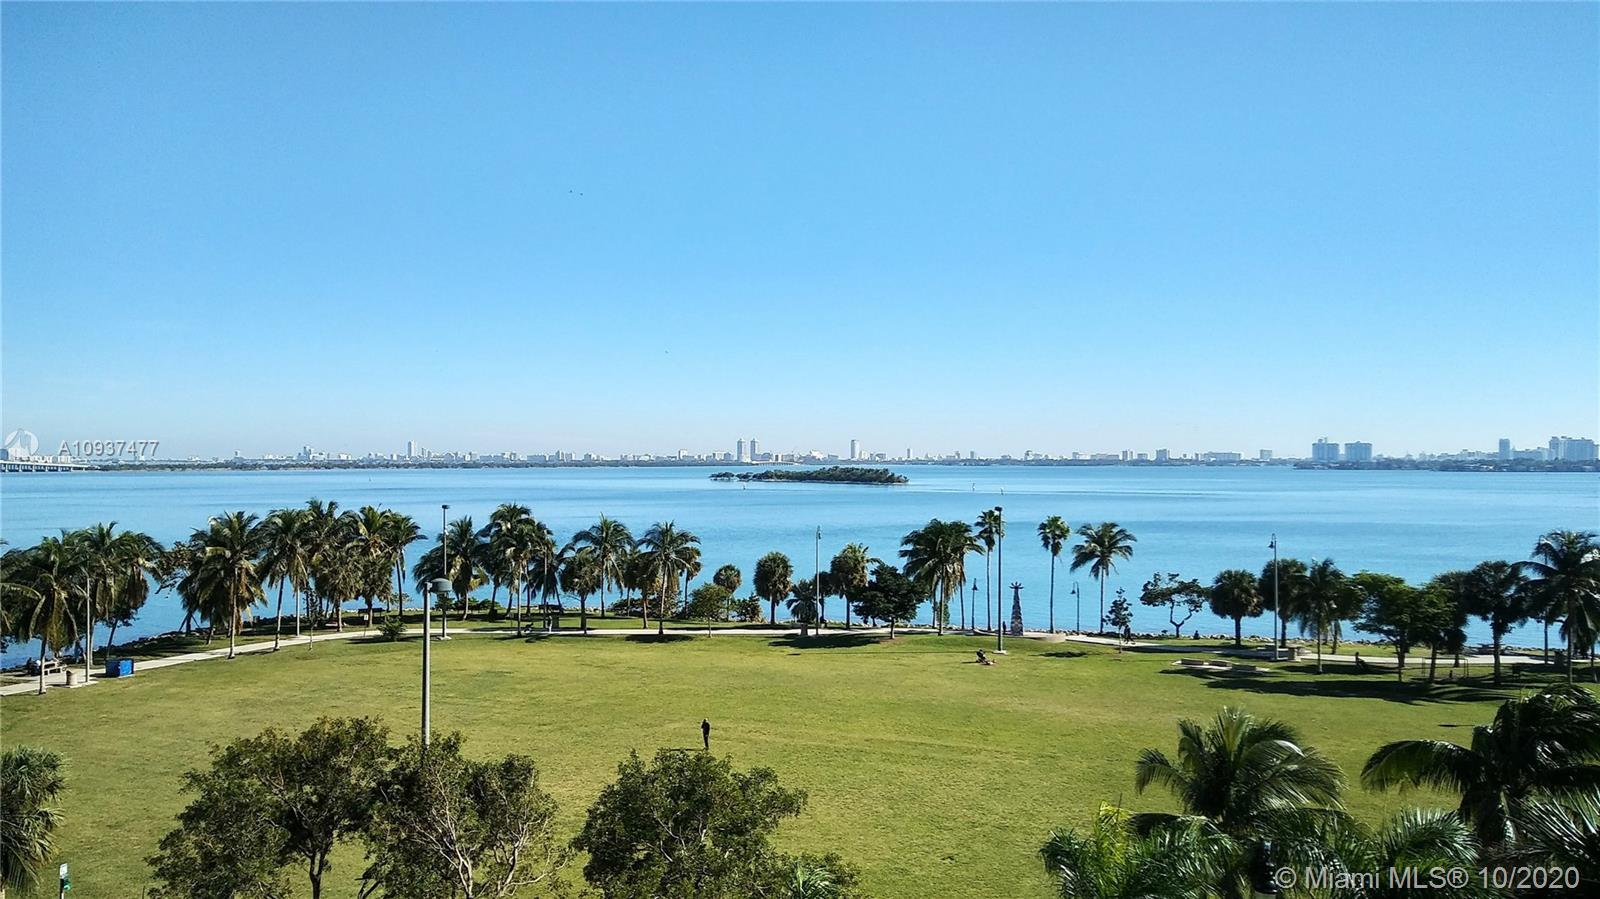 RARELY AVAILABLE OPEN LOFT W/ DEN FEATURING AMAZING DIRECT BAY VIEWS, HIGH 14' CEILINGS & WOOD FLOOR